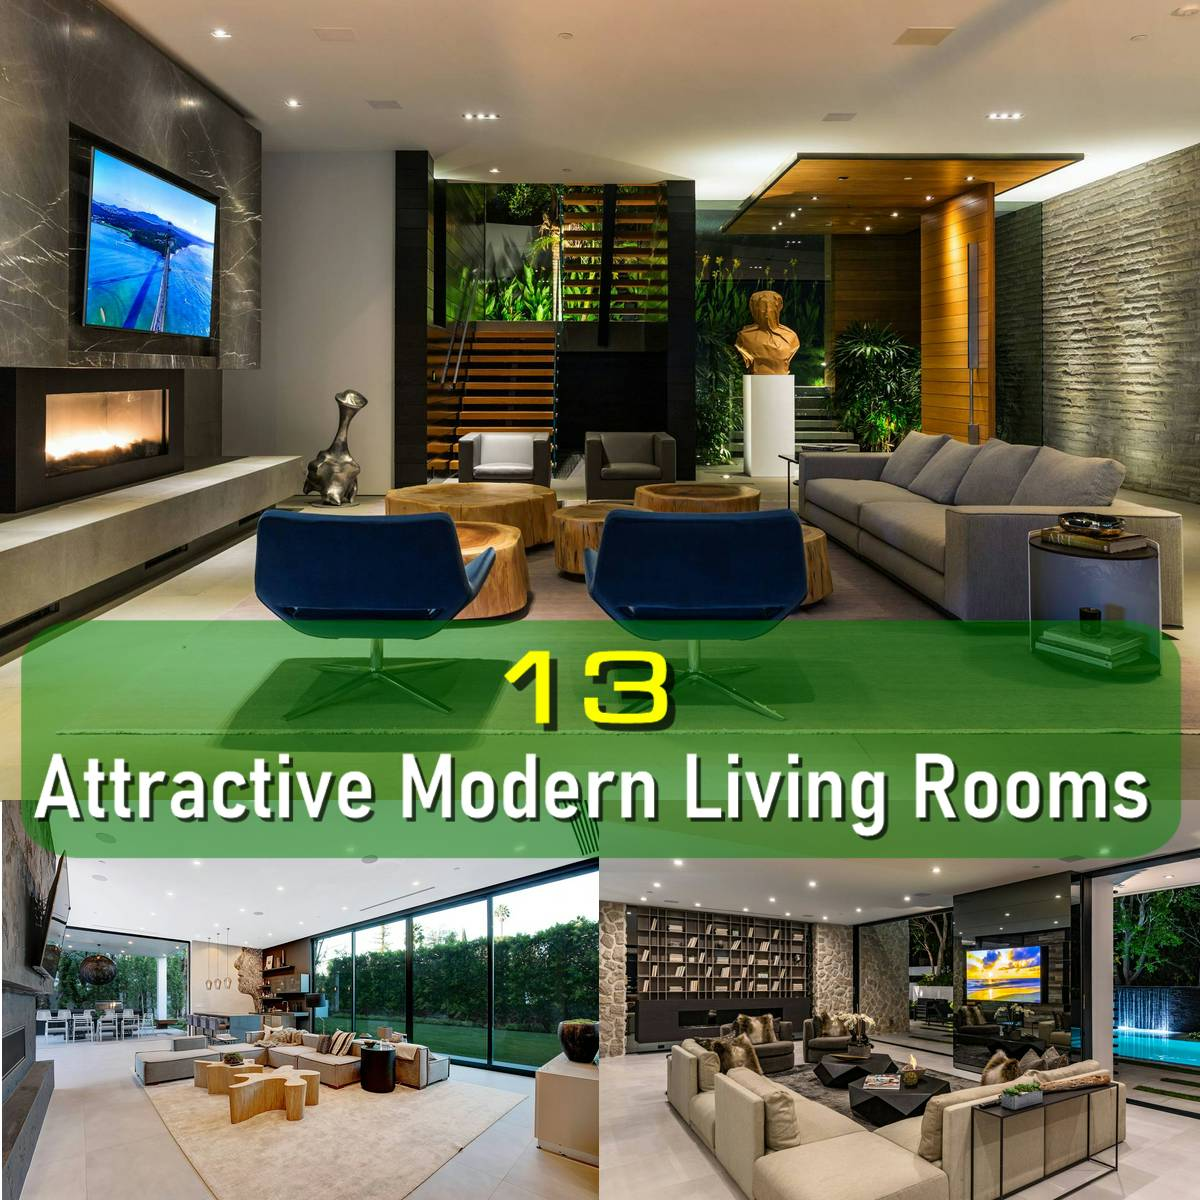 13 Modern Living Room Ideas with Irresistible Attraction